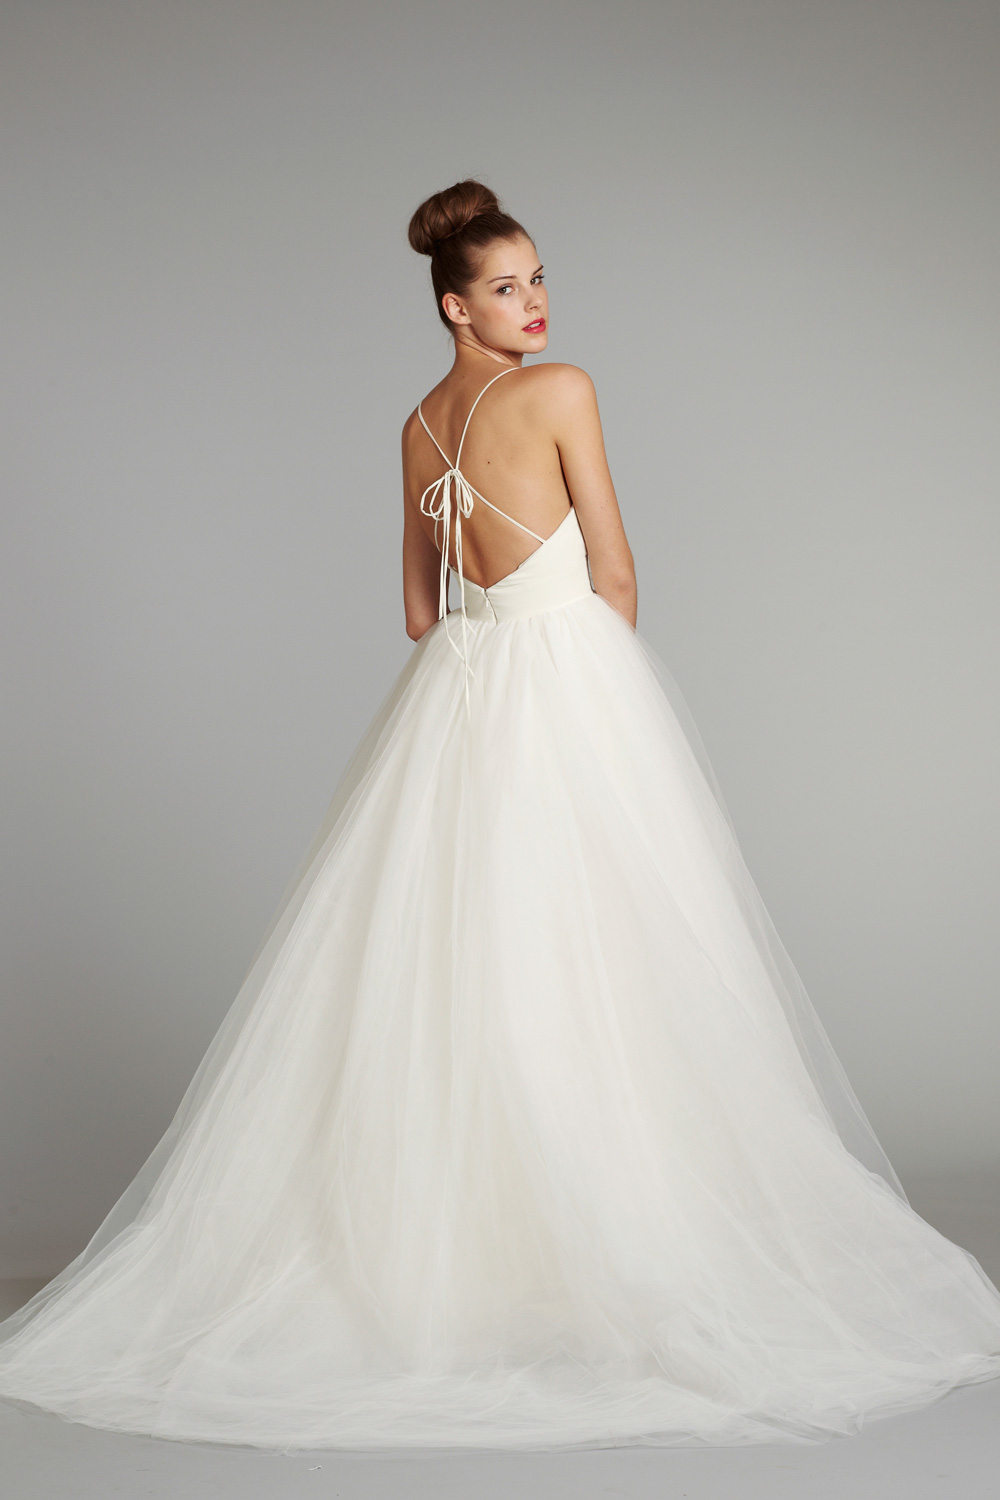 Bridal gown wedding dress jlm hayley paige blush fall 2012 for White and lilac wedding dress